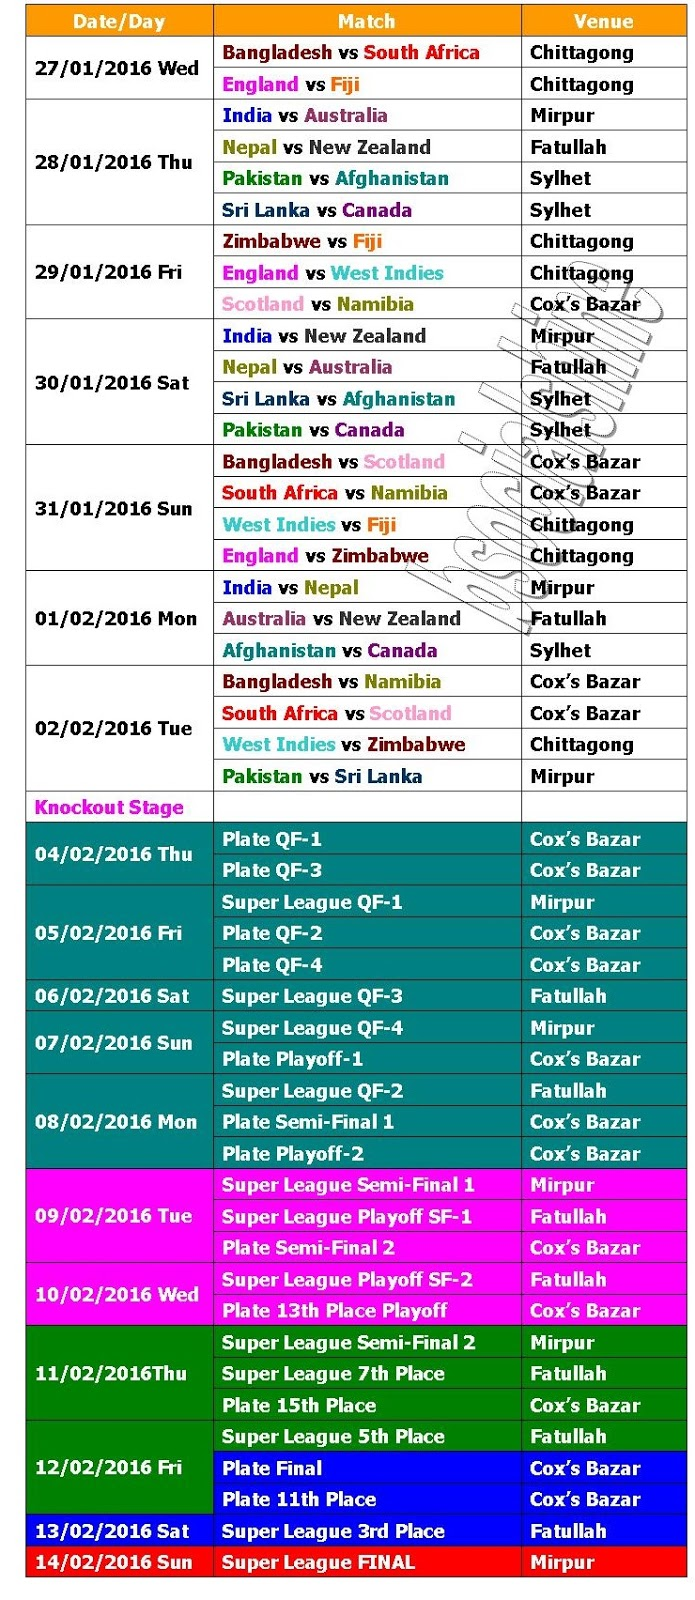 ICC Under 19 World Cup 2016 Schedule & Time Table,U19 ICC World Cup 2016 Schedule & Time Table,U19 world cup 2016 fixture,world cup 2016 schedule,world cup 2016 fixture,time table,under 19 world cup 2016,cricket world cup,ODI world cup 2016 schedule & time table,under 19 world cup,teams,player list,groups,ICC u9 world cup 2016 schedule,image,full shcedule & time table,fixture,match,timing,venue,place,match detail,u19 cricket world cup 2016 U19 ICC World Cup 2016 Schedule & Time Table Bangladesh, South Africa, England, Fiji, India, Australia, Nepal, New Zealand, Pakistan, Afghanistan, Sri Lanka, Canada, Zimbabwe, West Indies, Scotland, Namibia